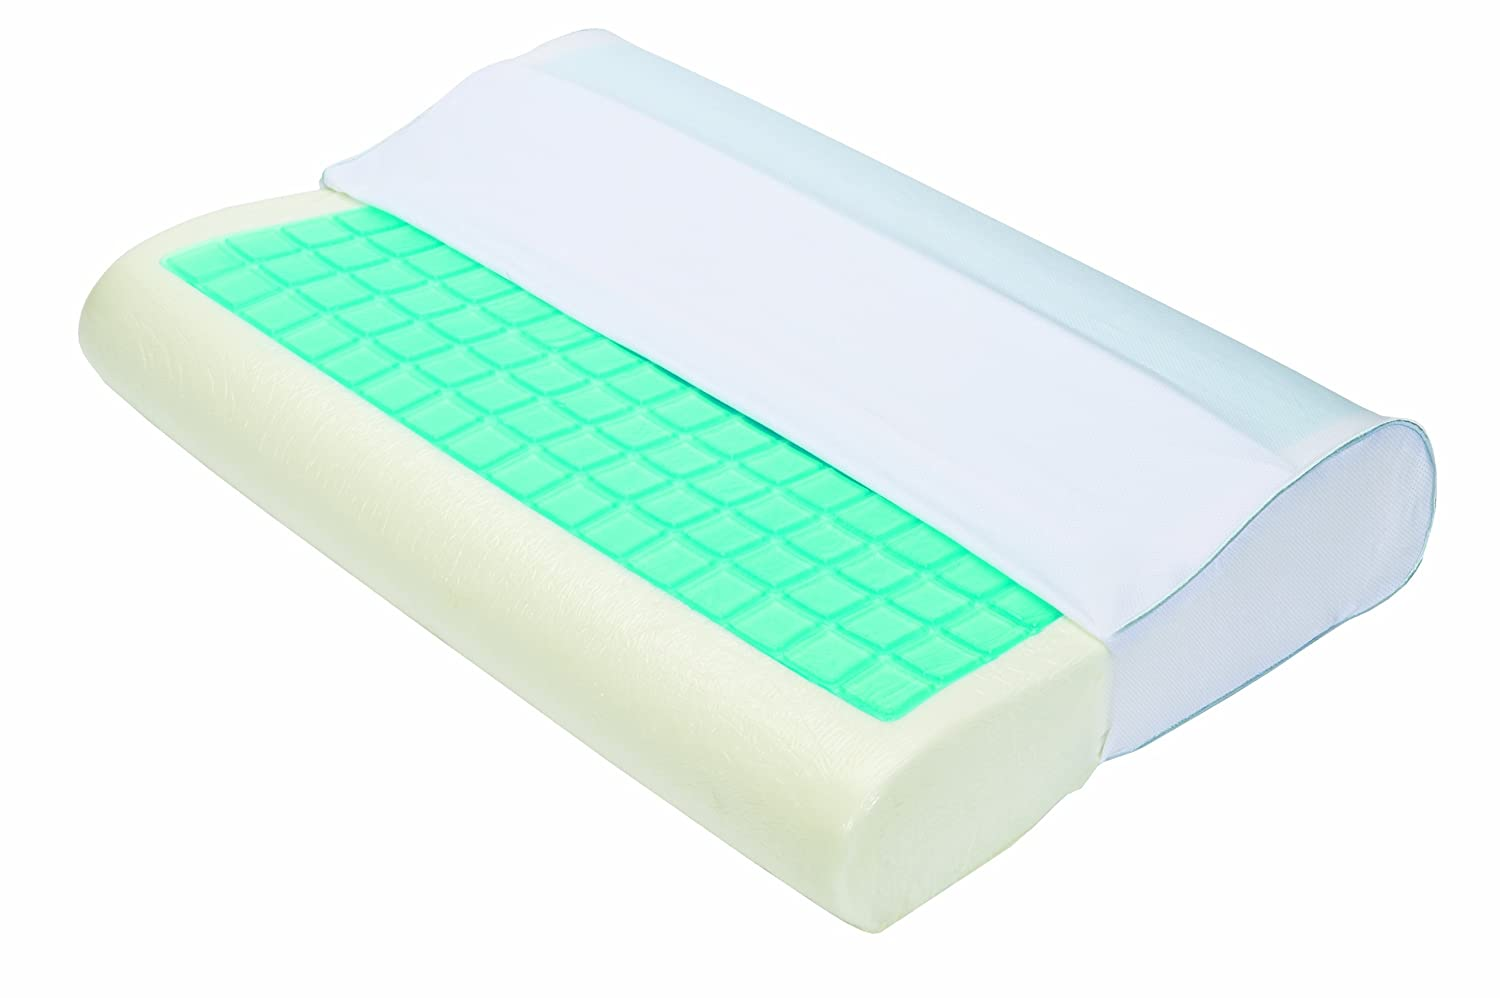 Obusforme PL-Gel-CT Thermagel Memory Foam Contour Pillow